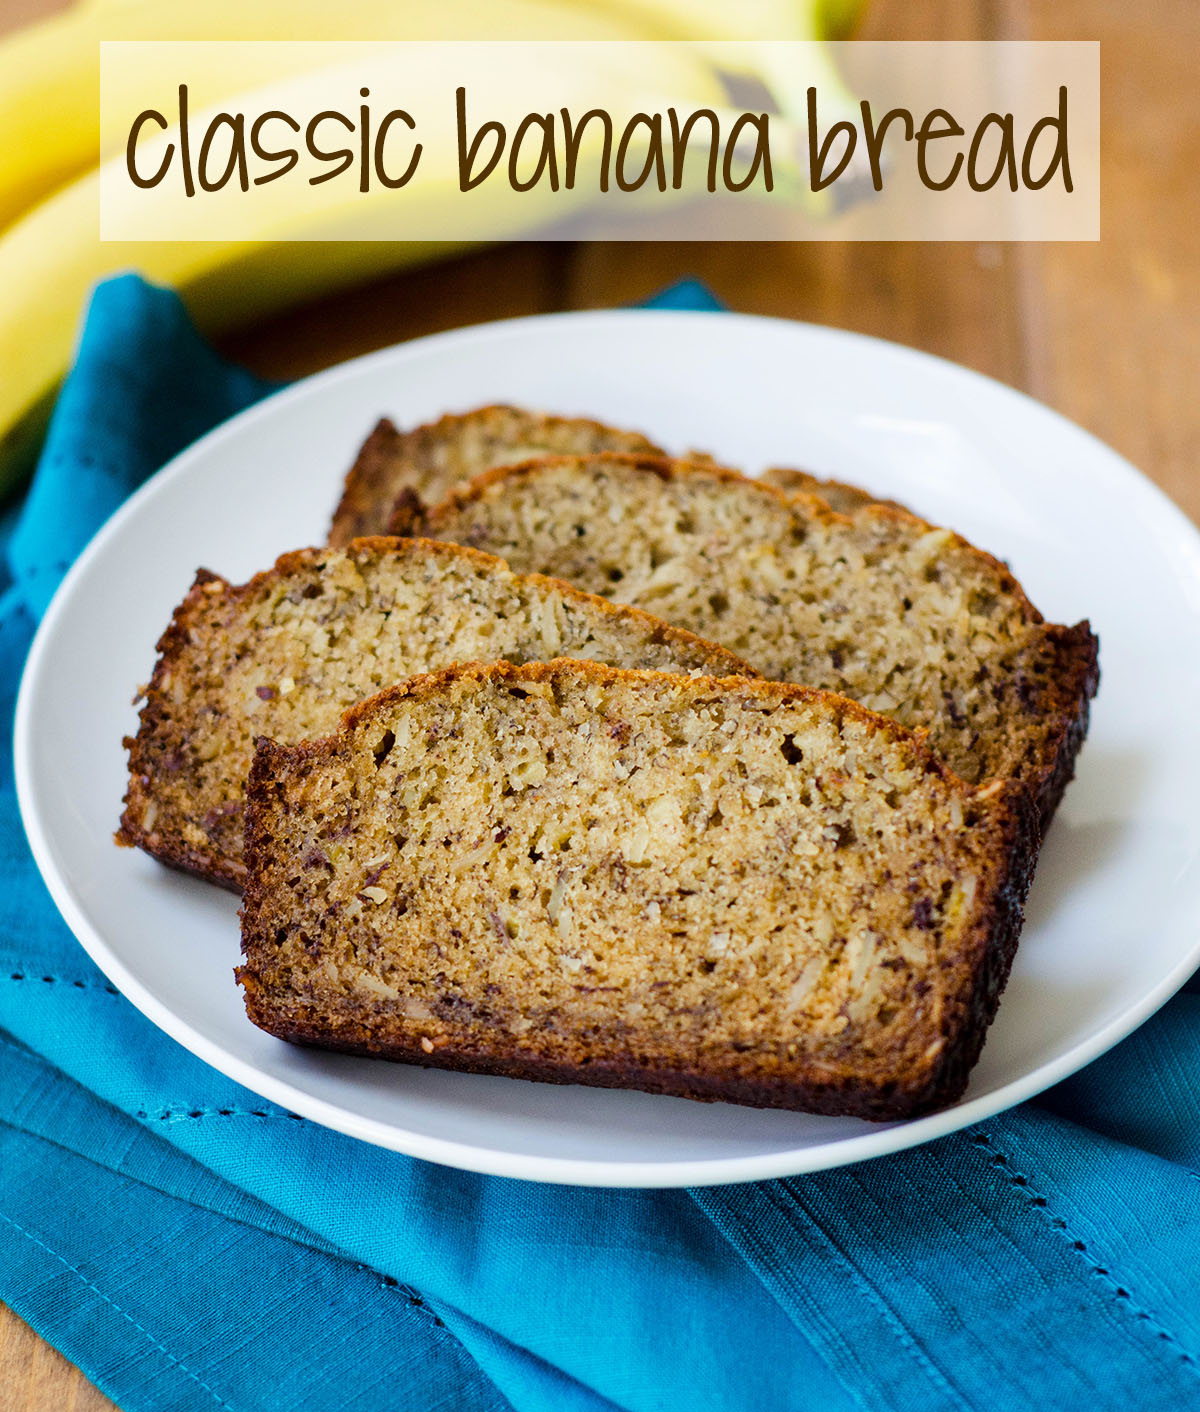 Classic Banana Bread: Spiced with a touch of cinnamon and studded with nuts, not much beats this classic quick bread!